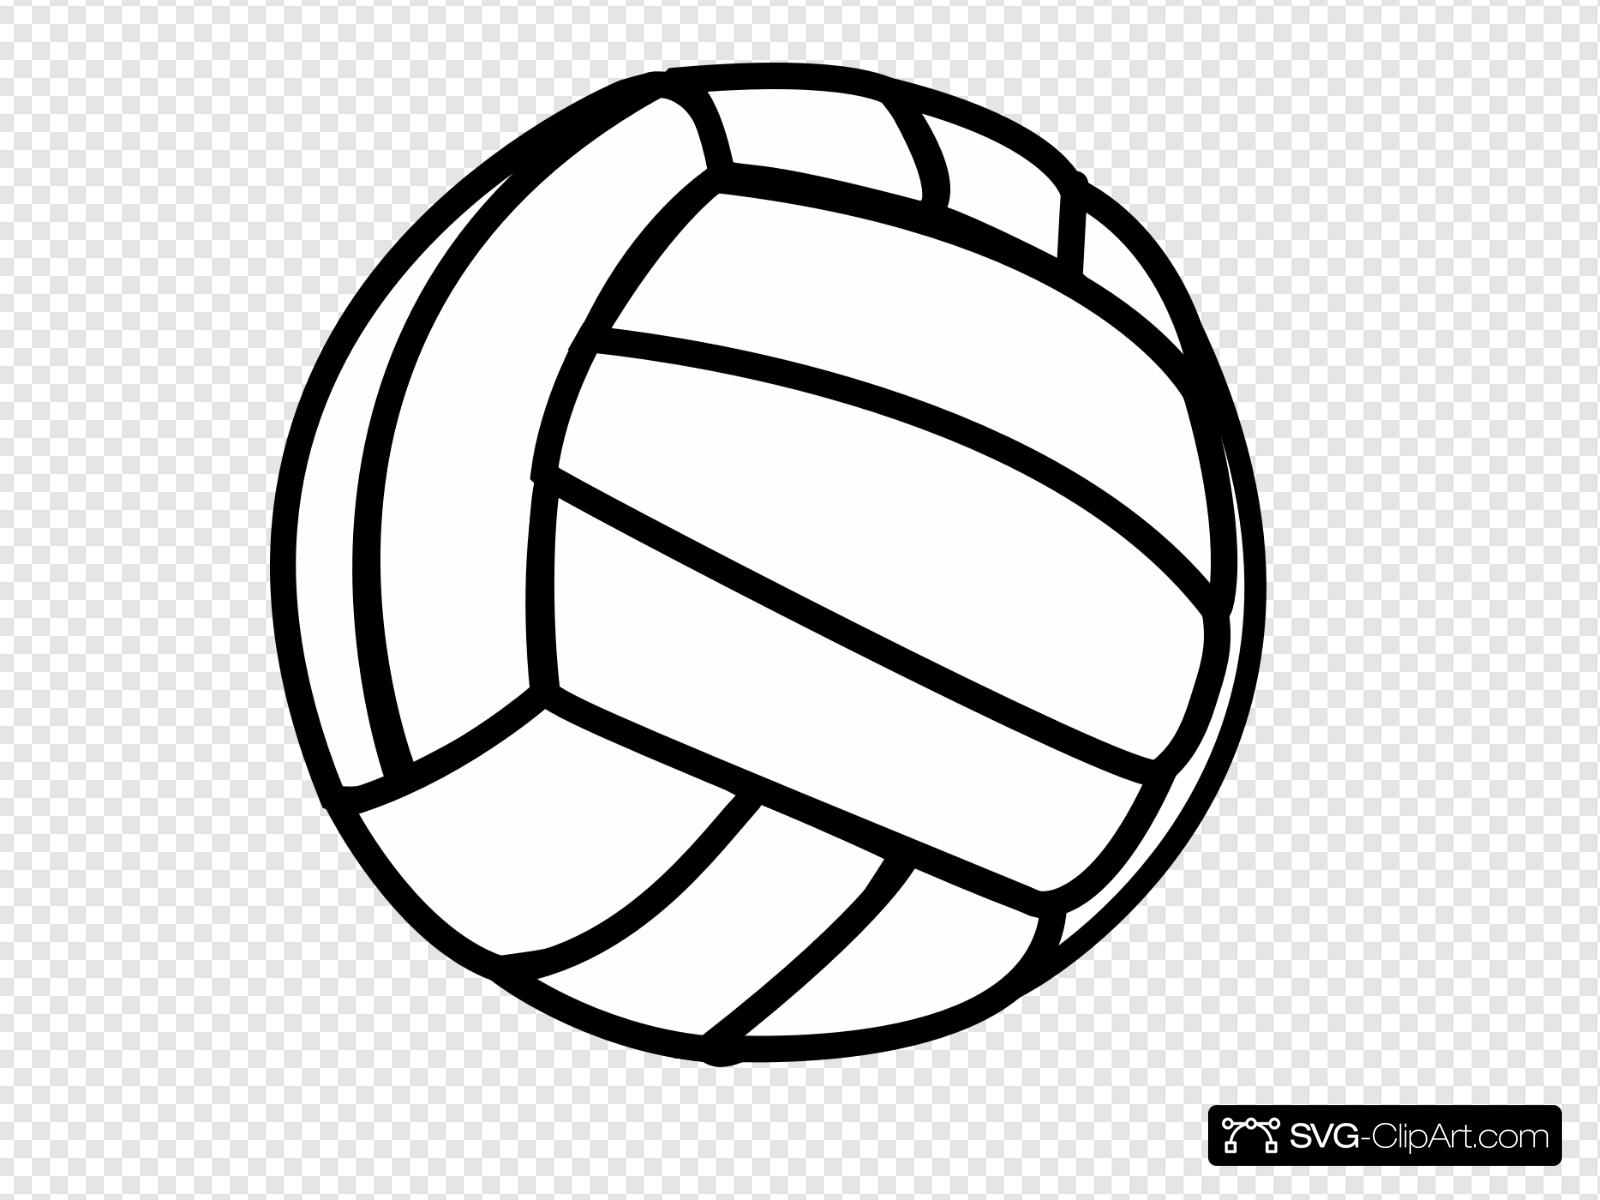 Volleyball Clip art, Icon and SVG.